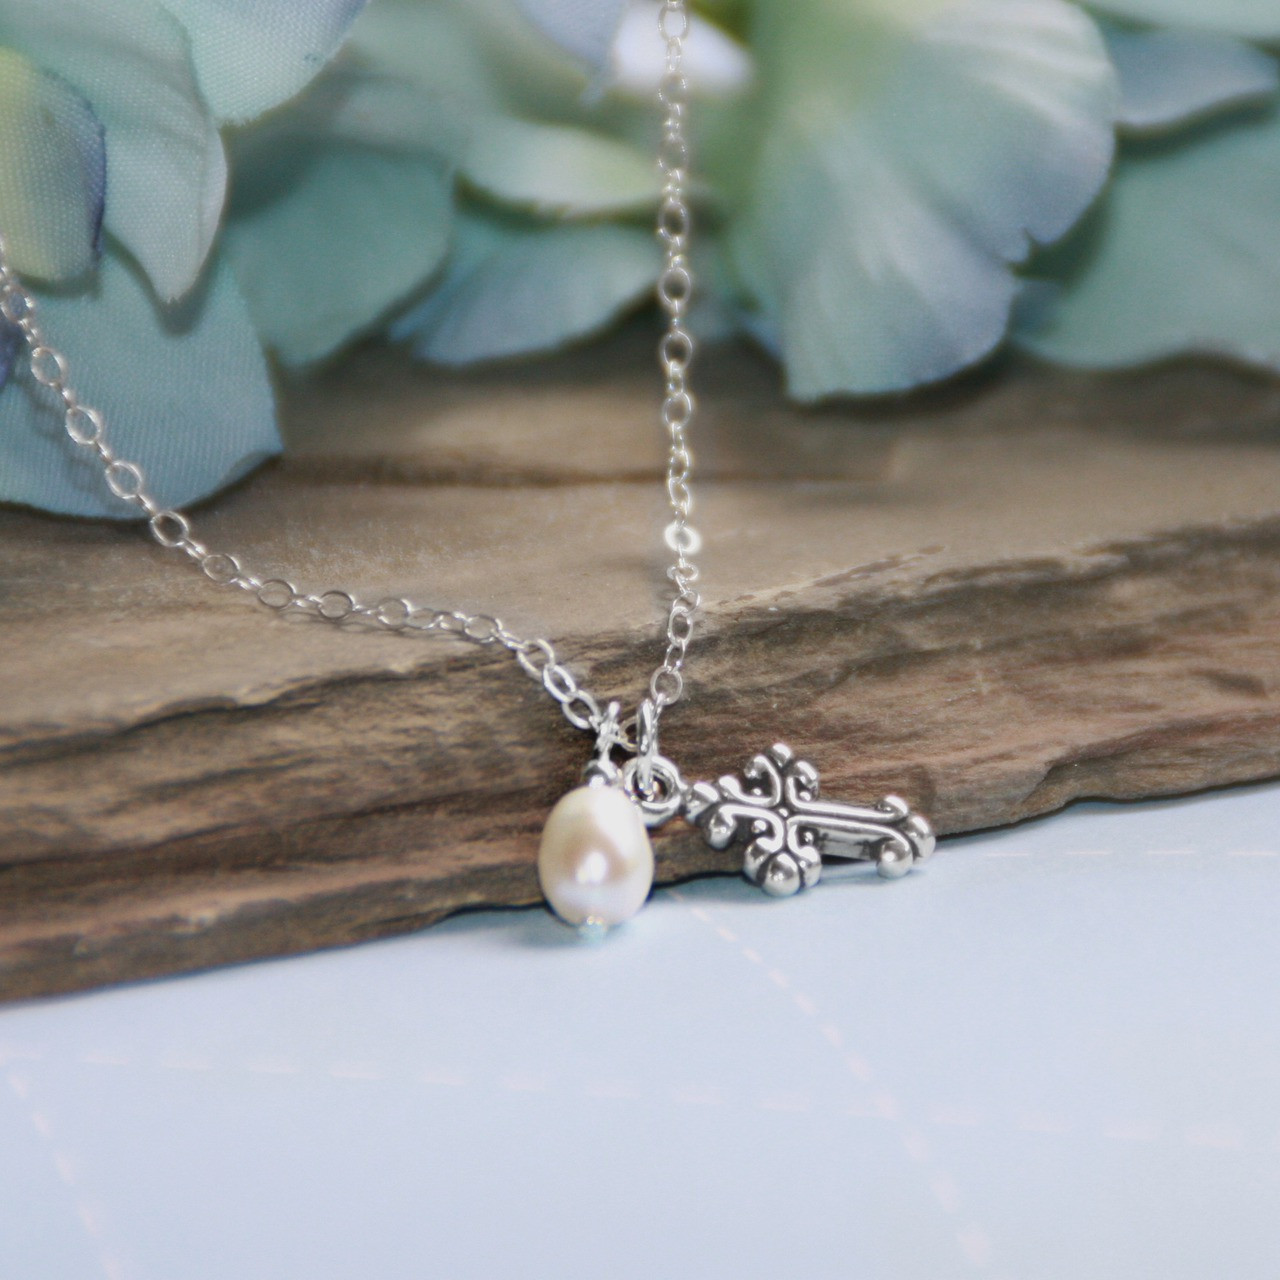 STG-140  Another Sterling Silver Top Selling Cross Necklace with added Freshwater Pearl